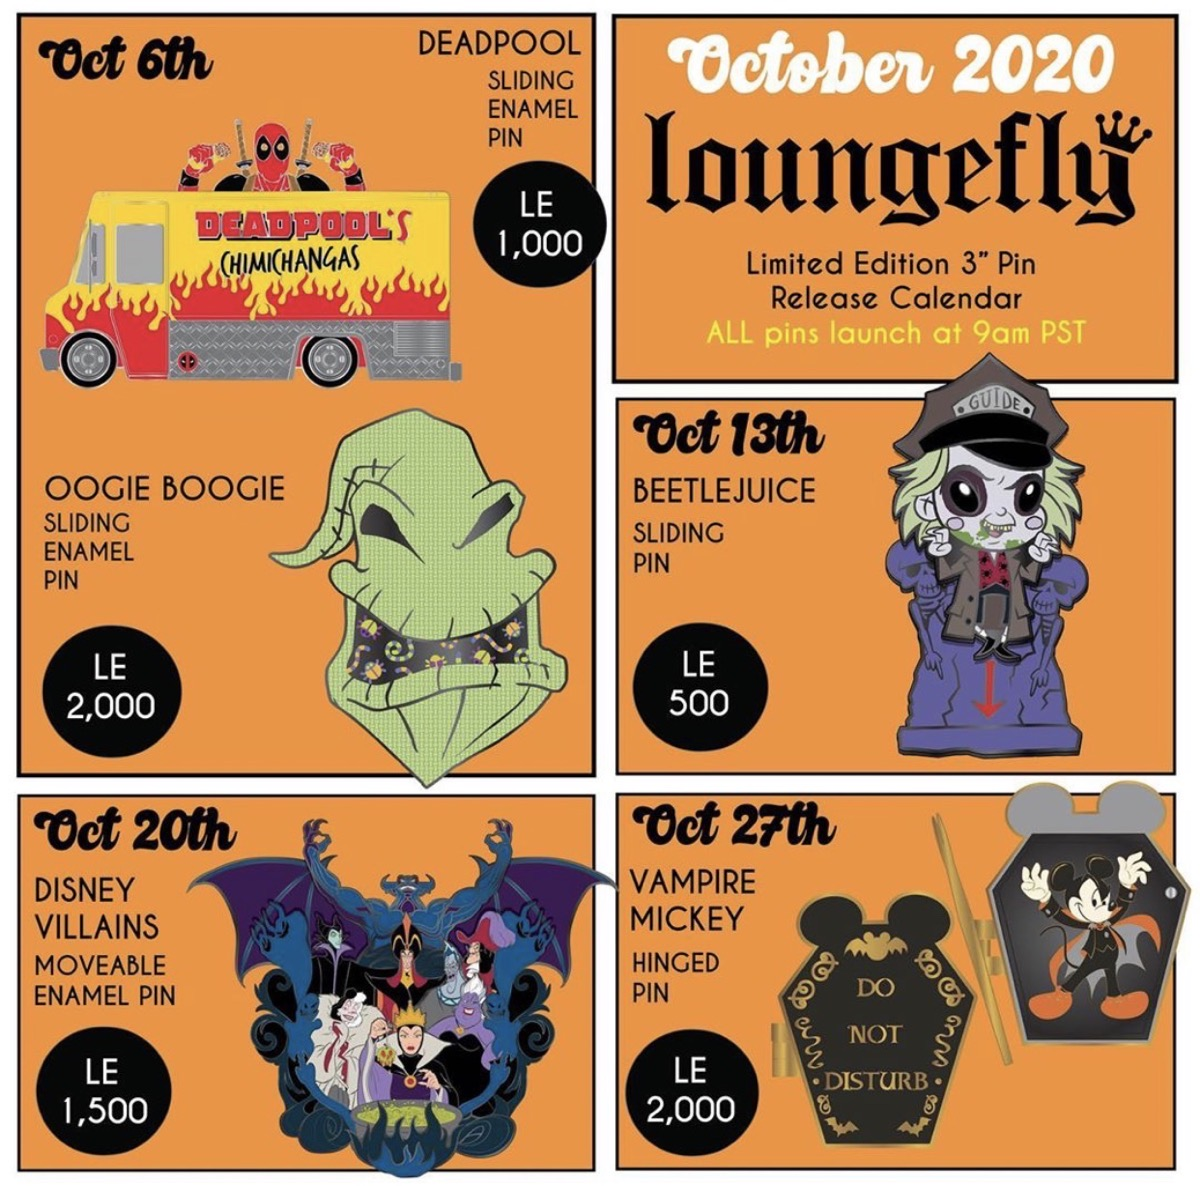 October 2020 Loungefly Disney Pin Preview